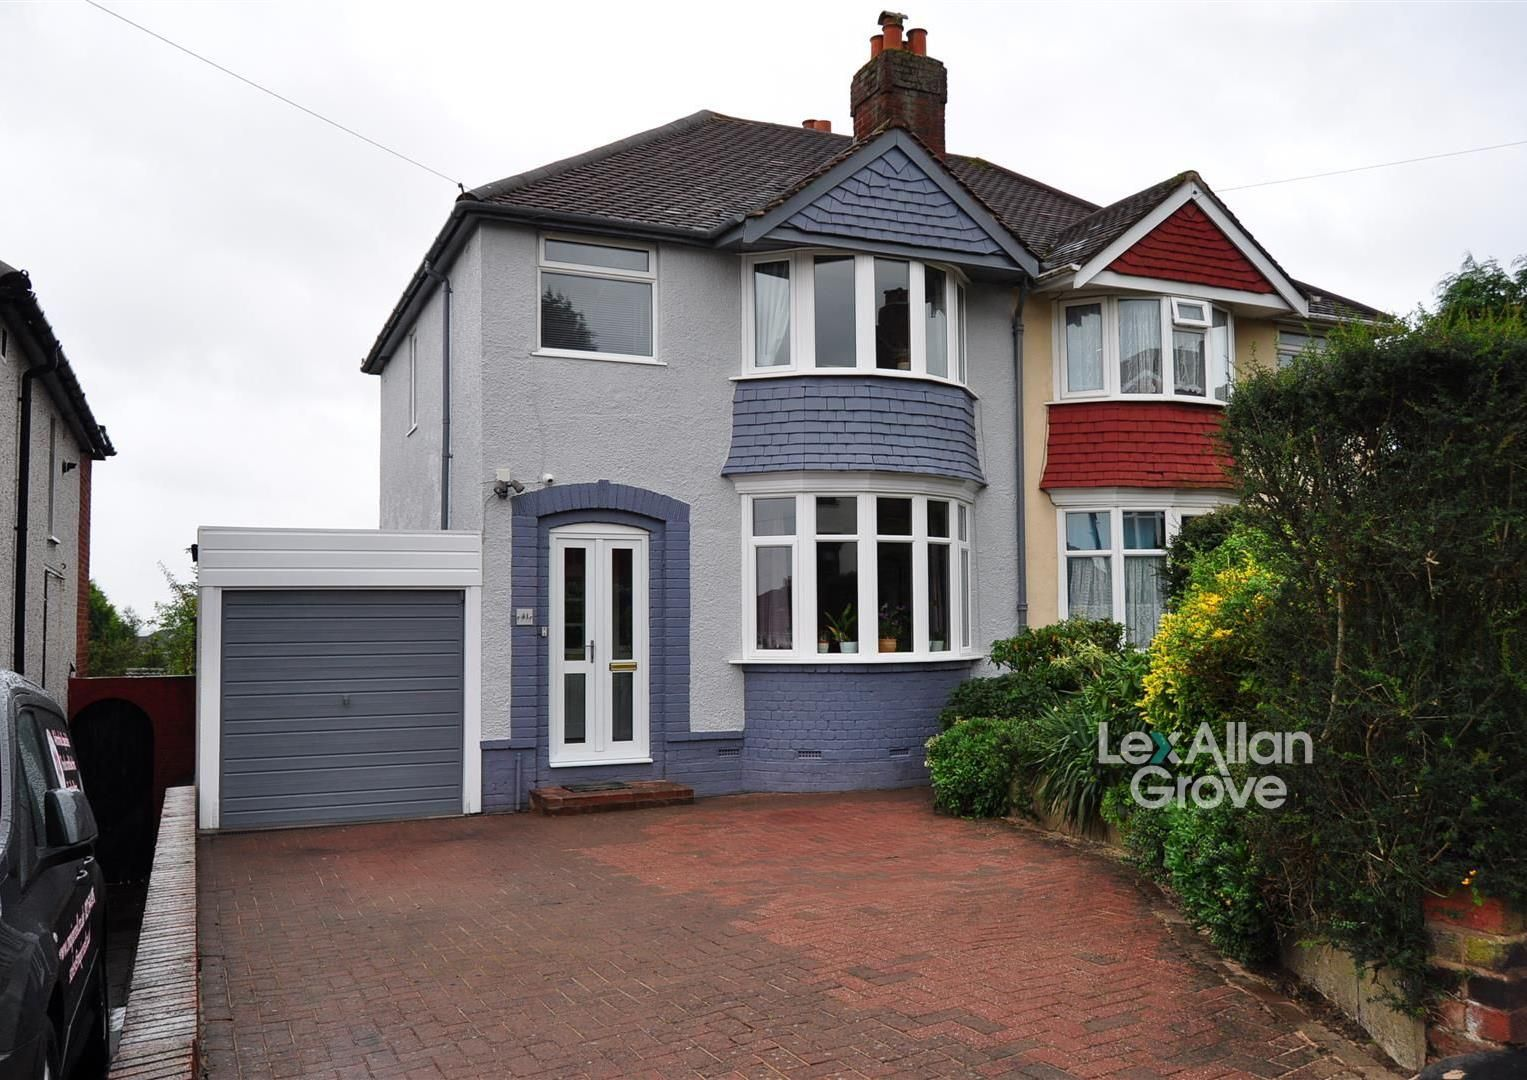 3 bed semi-detached for sale, B69